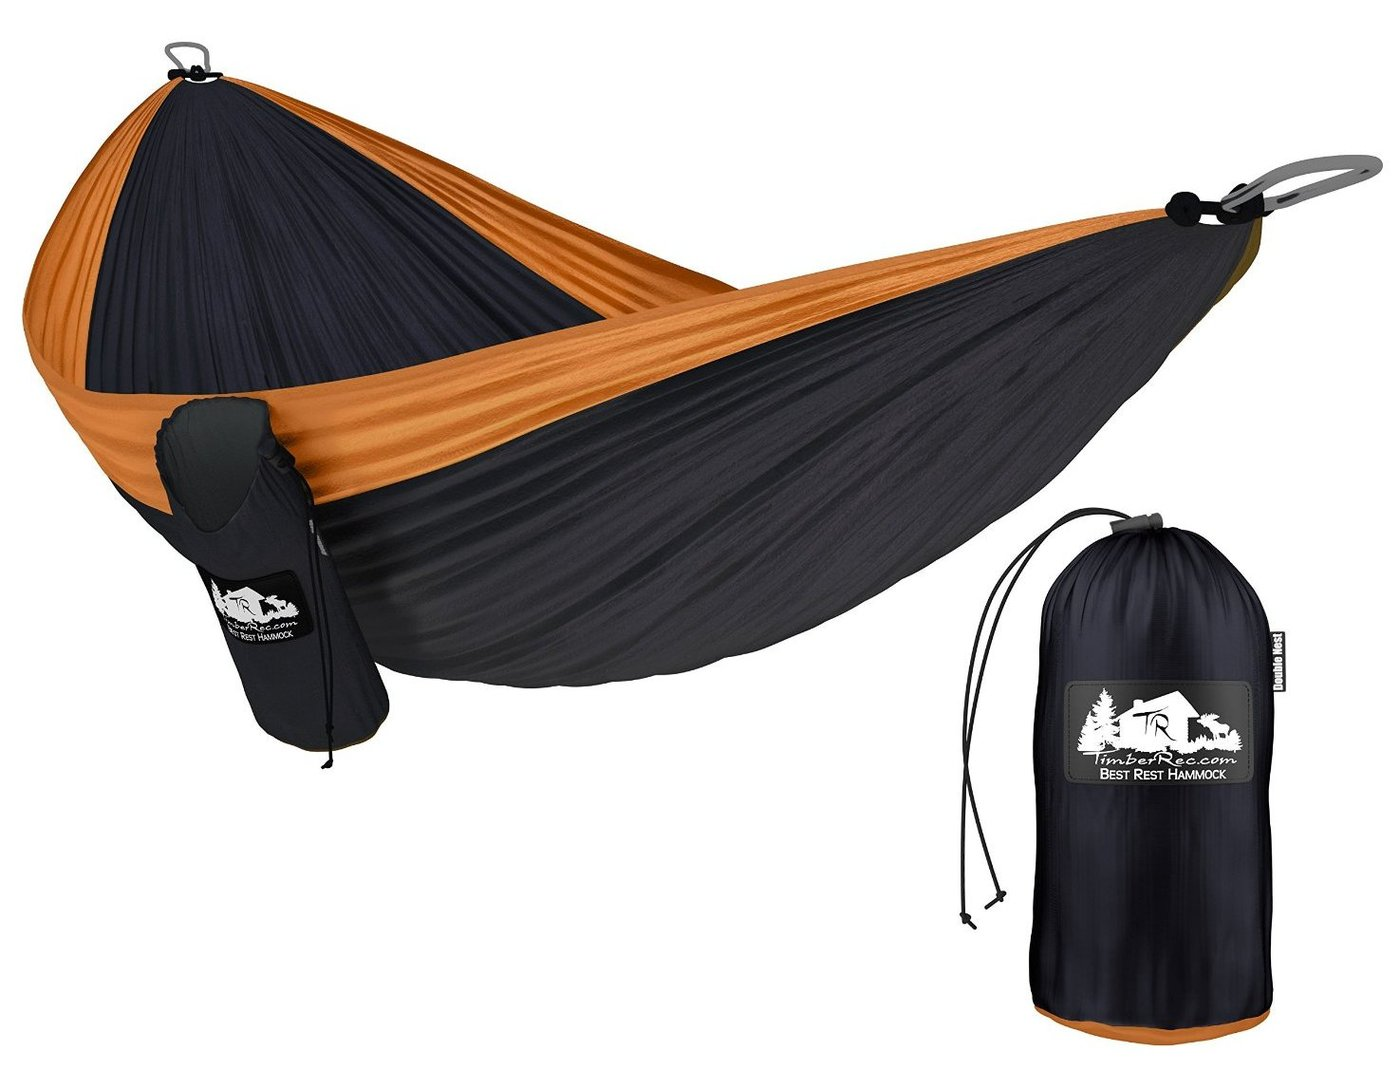 Hammock Review: Tribe Provisions vs. ENO - Sisterhood of the Travelers